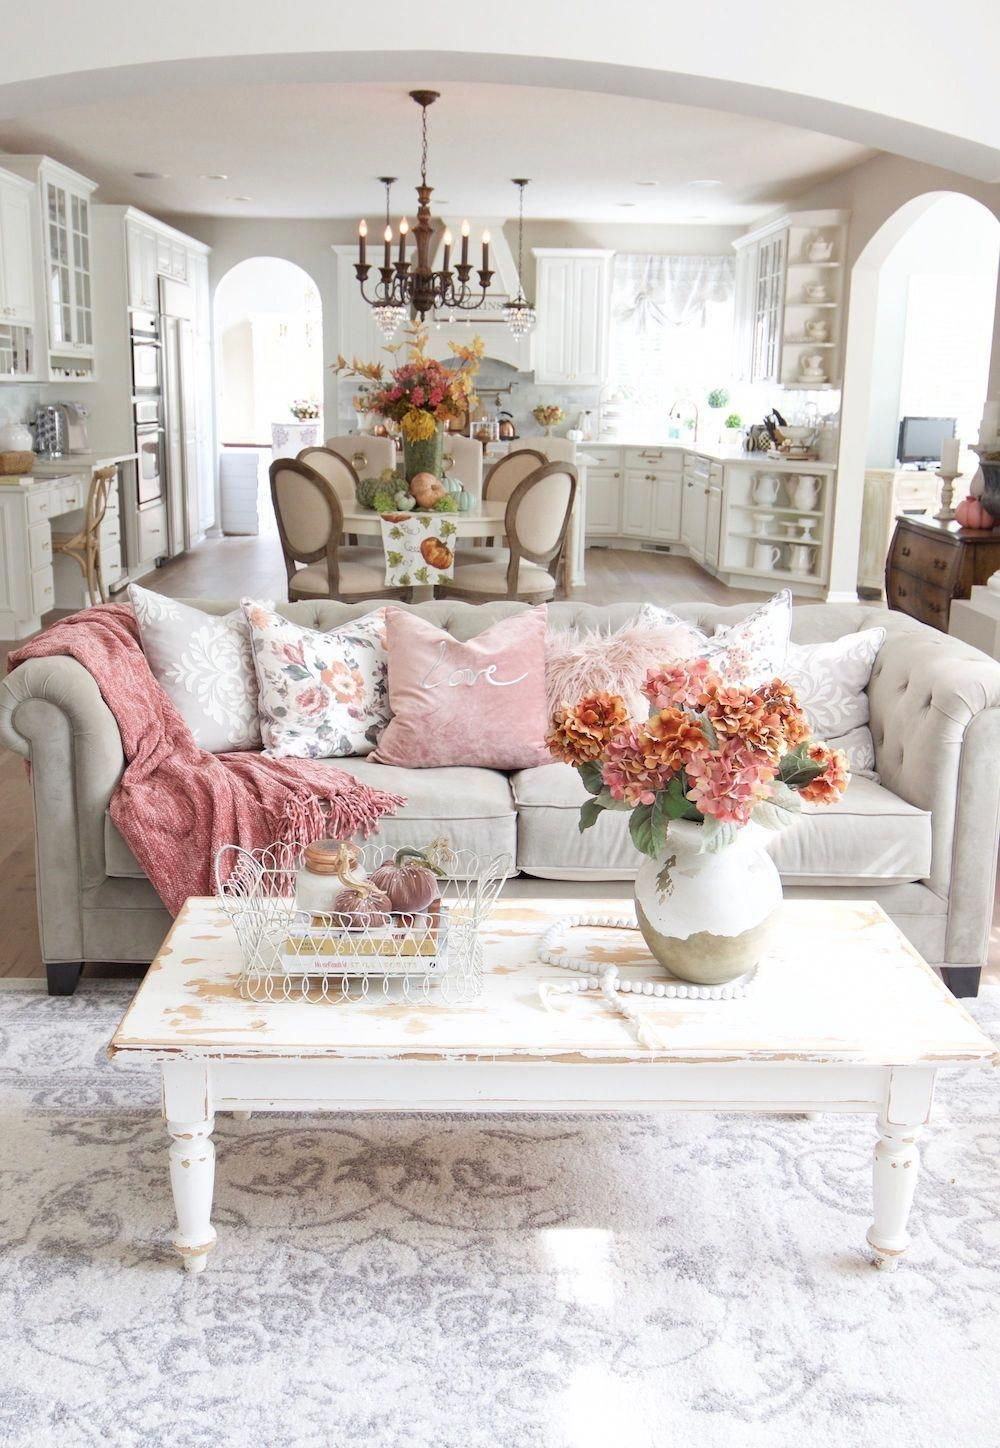 30 Beautiful French Country Living Room Decor Ideas To Copy Asap